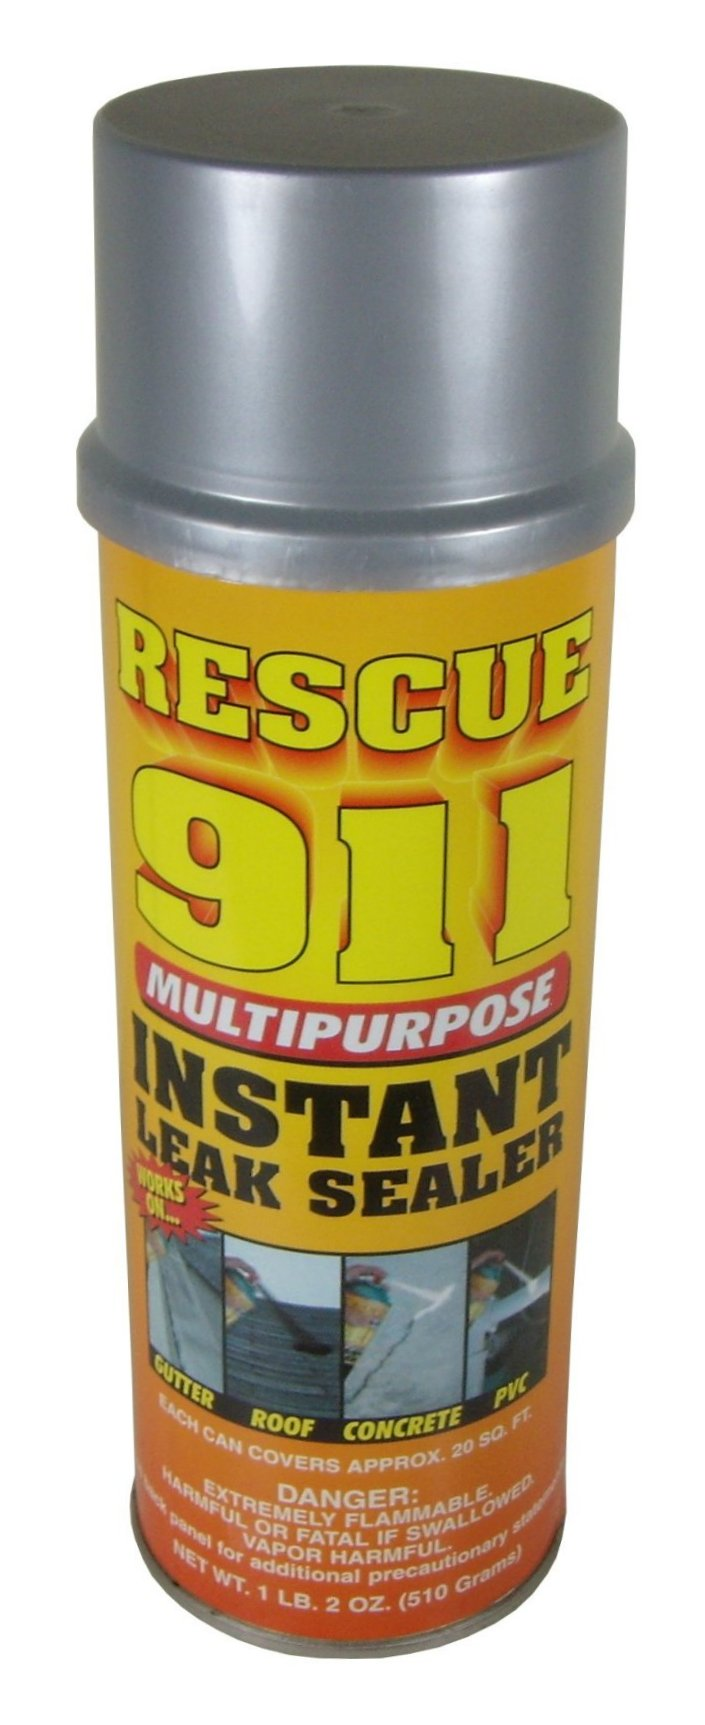 Click For A Larger View Rescue 911 Leak Sealer